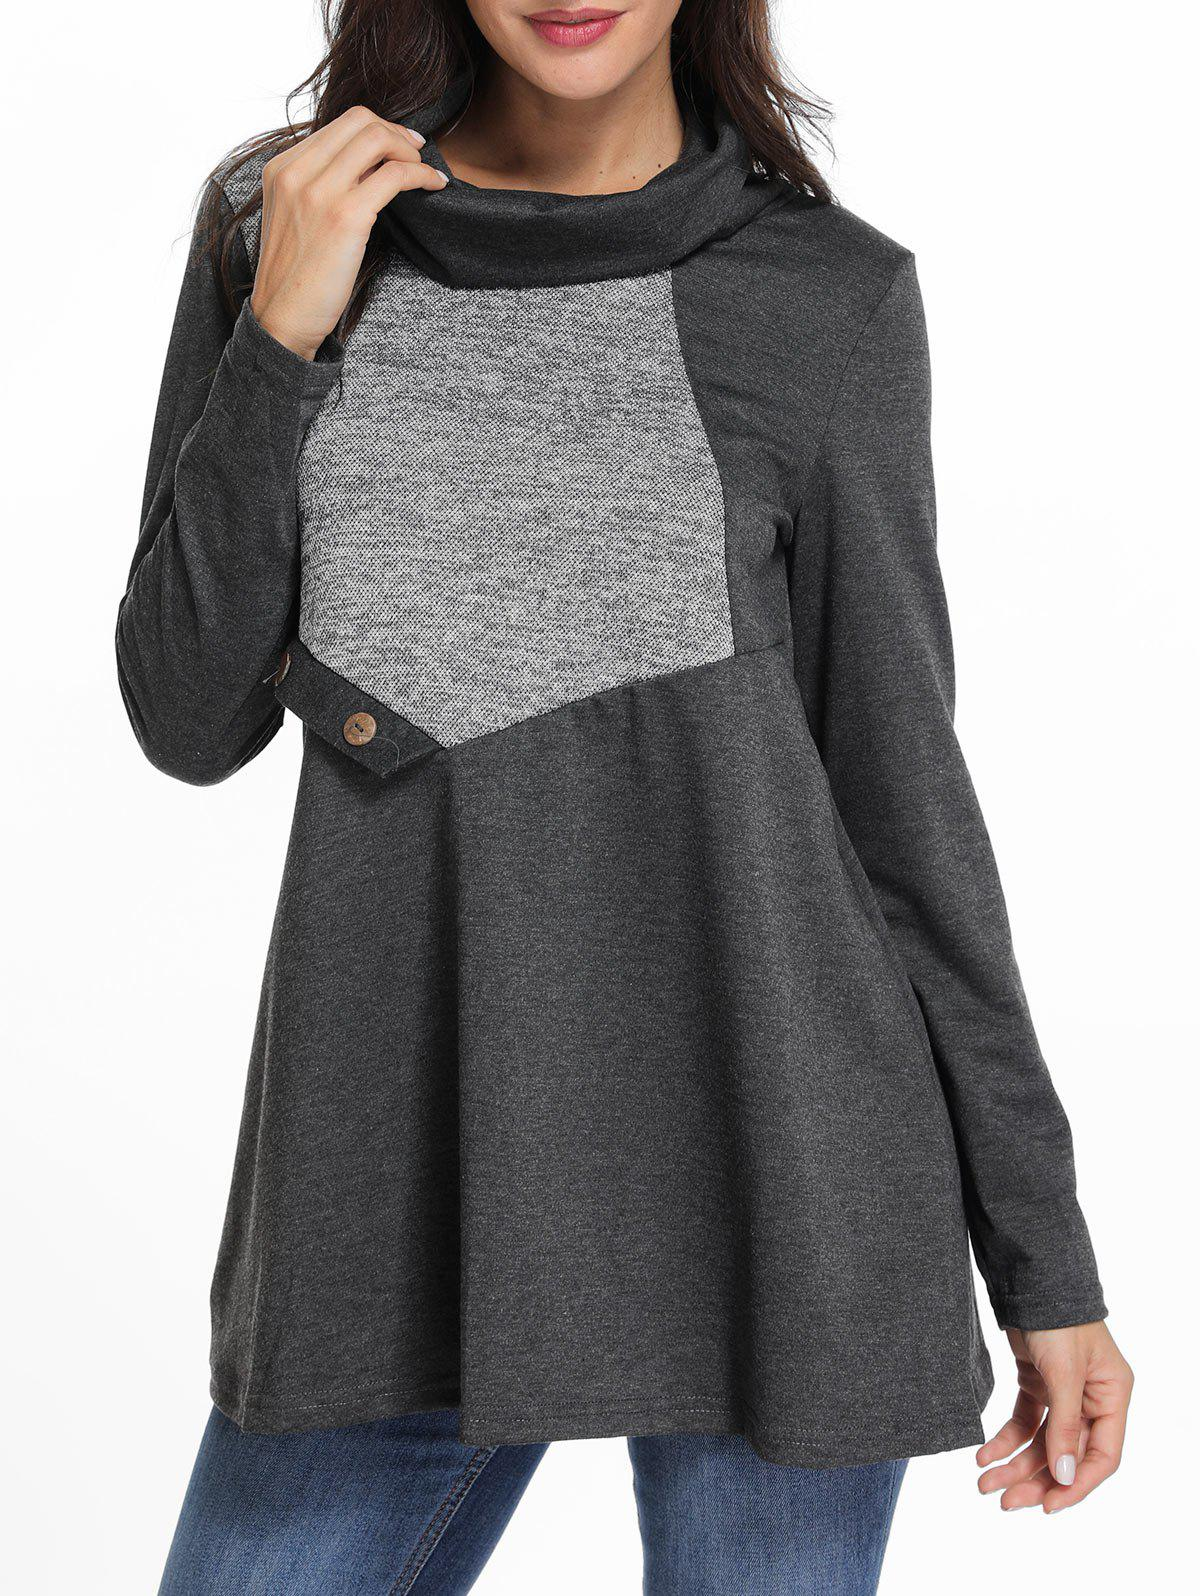 Chic Cowl Neck Contrast Tunic T Shirt